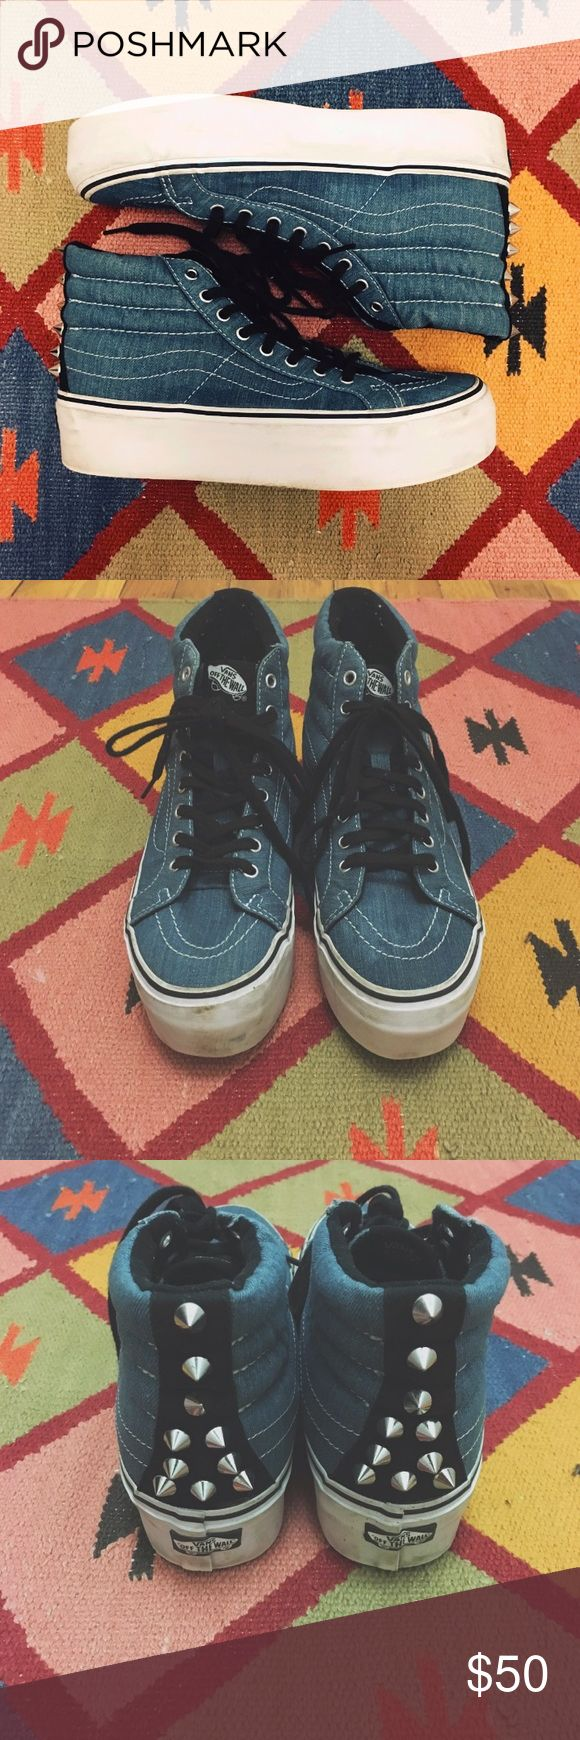 VANS SK8 HI PLATFORM STUDDED SHOE - Blue Denim/White - US Men Size 6.5 / US Woman Size 8 - True to Size - Worn Only Twice - Some small signs of wear - 8/10 condition    (Last two photos not of actual shoes for sale) Vans Shoes Sneakers